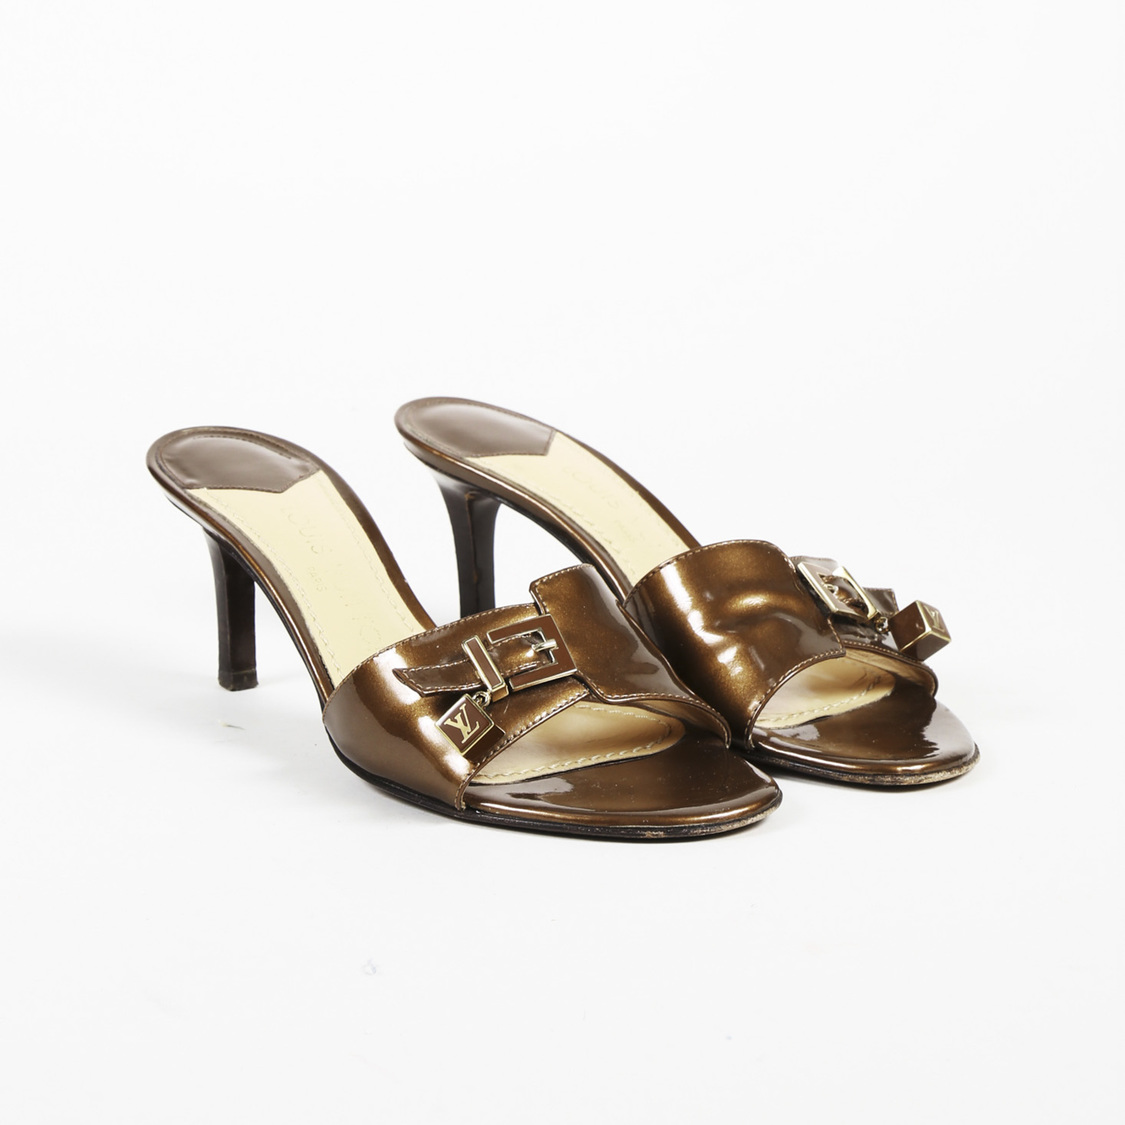 ab23599c9 Details about Louis Vuitton Brown Patent Leather Mule Sandals SZ 37.5